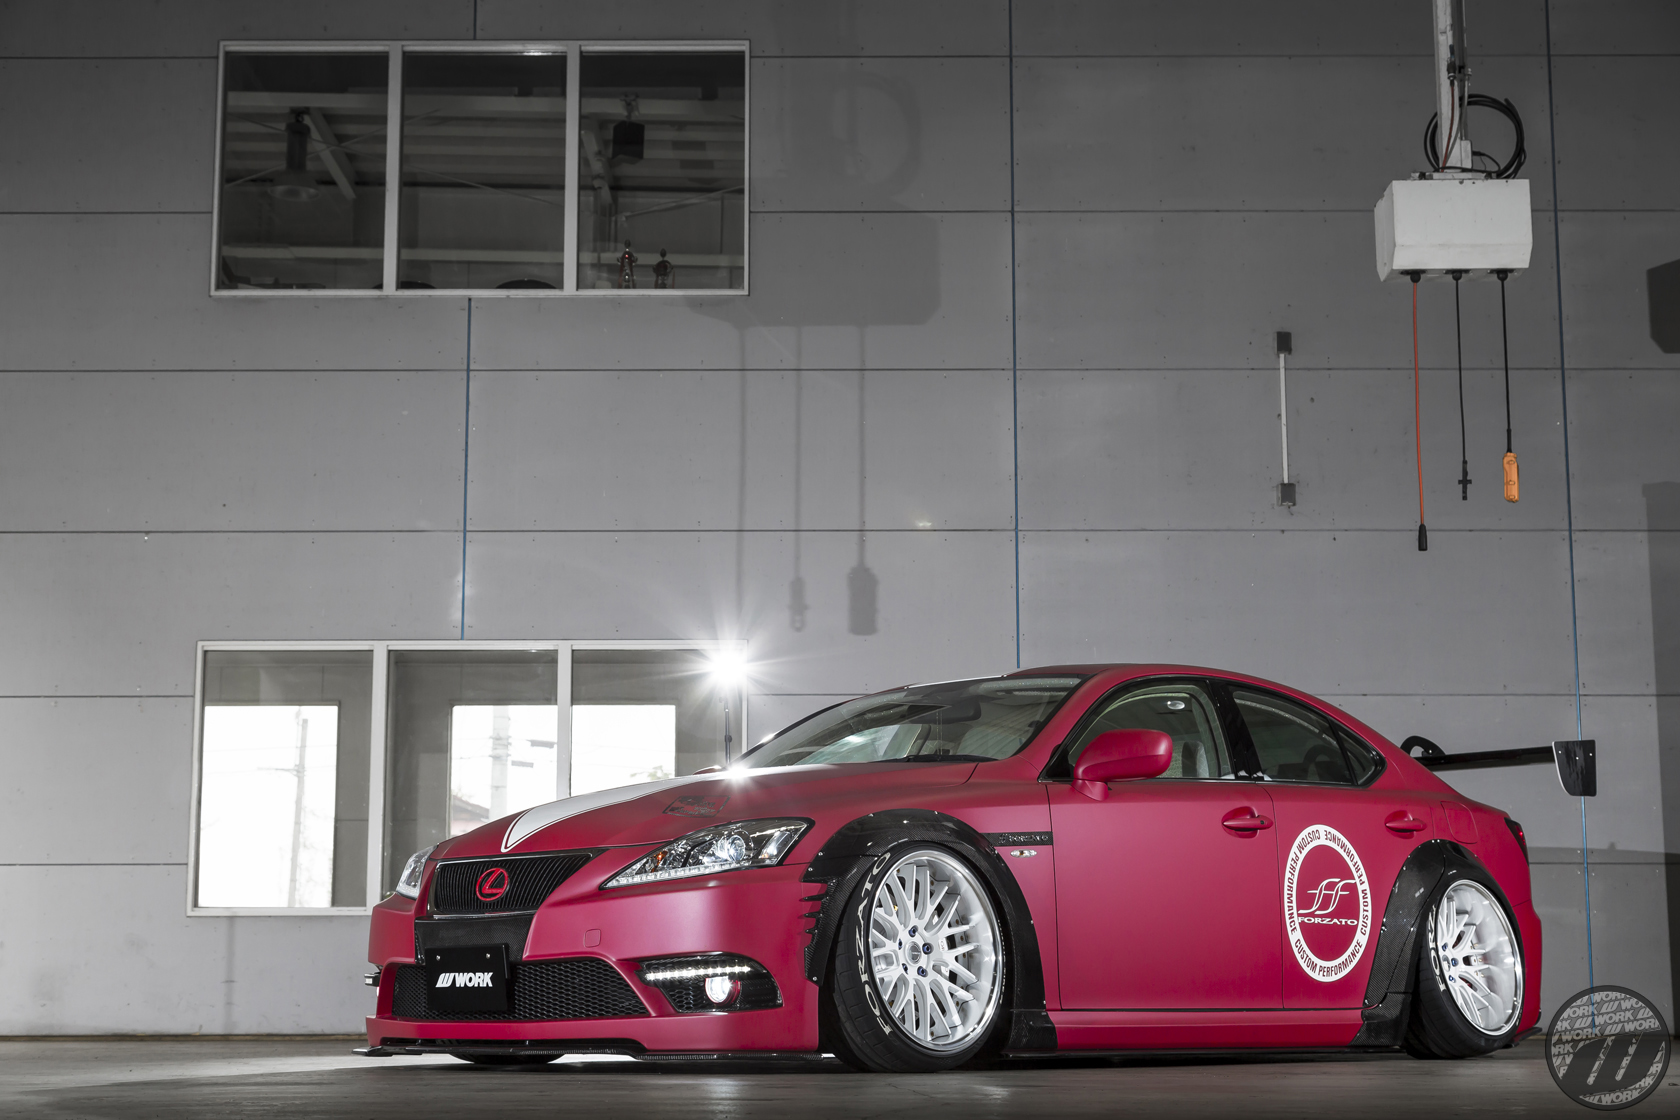 FORZATO Lexus IS on WORK Gnosis GR204 in White (WHT) Finish – Photo by WORK Wheels Japan